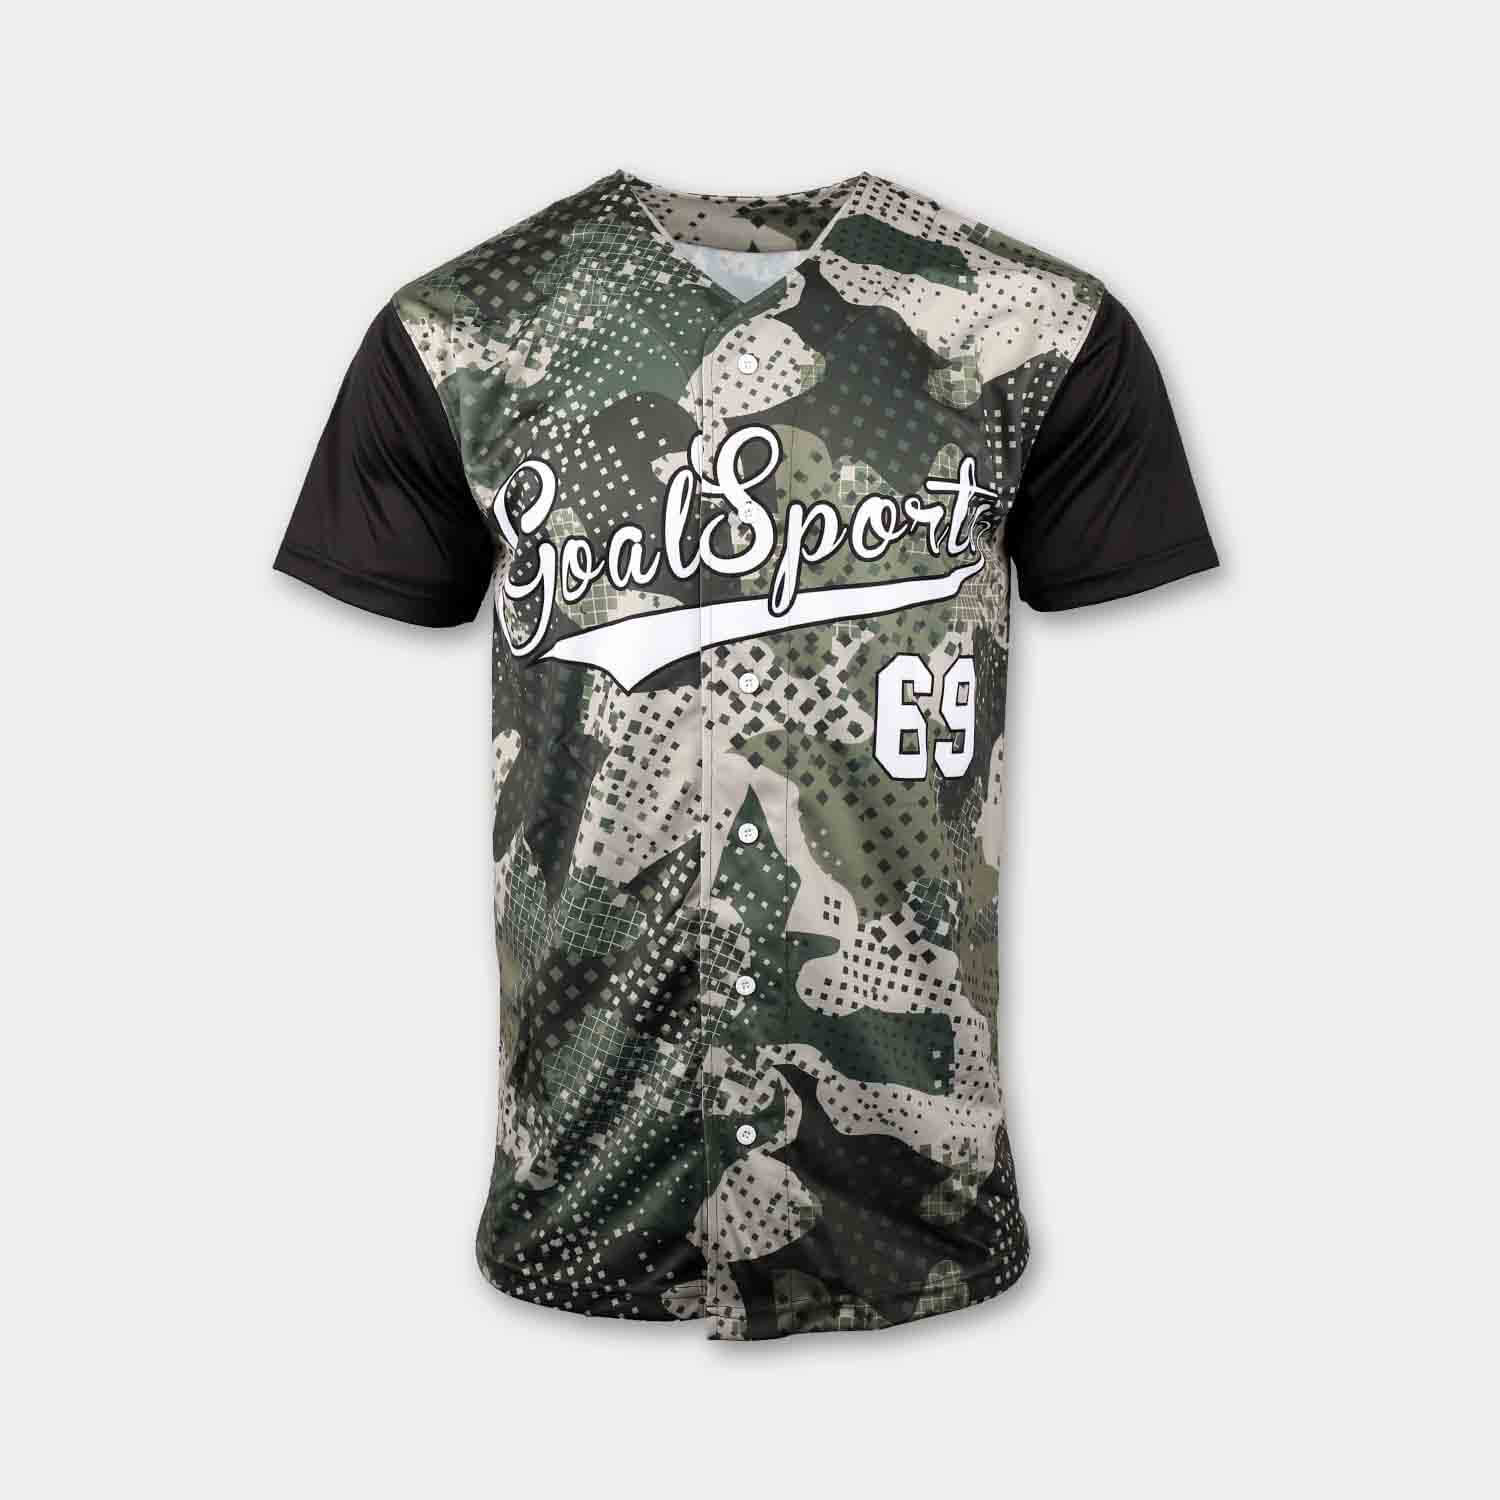 Full dye sublimation wholesale custom slow pitch softball jerseys front